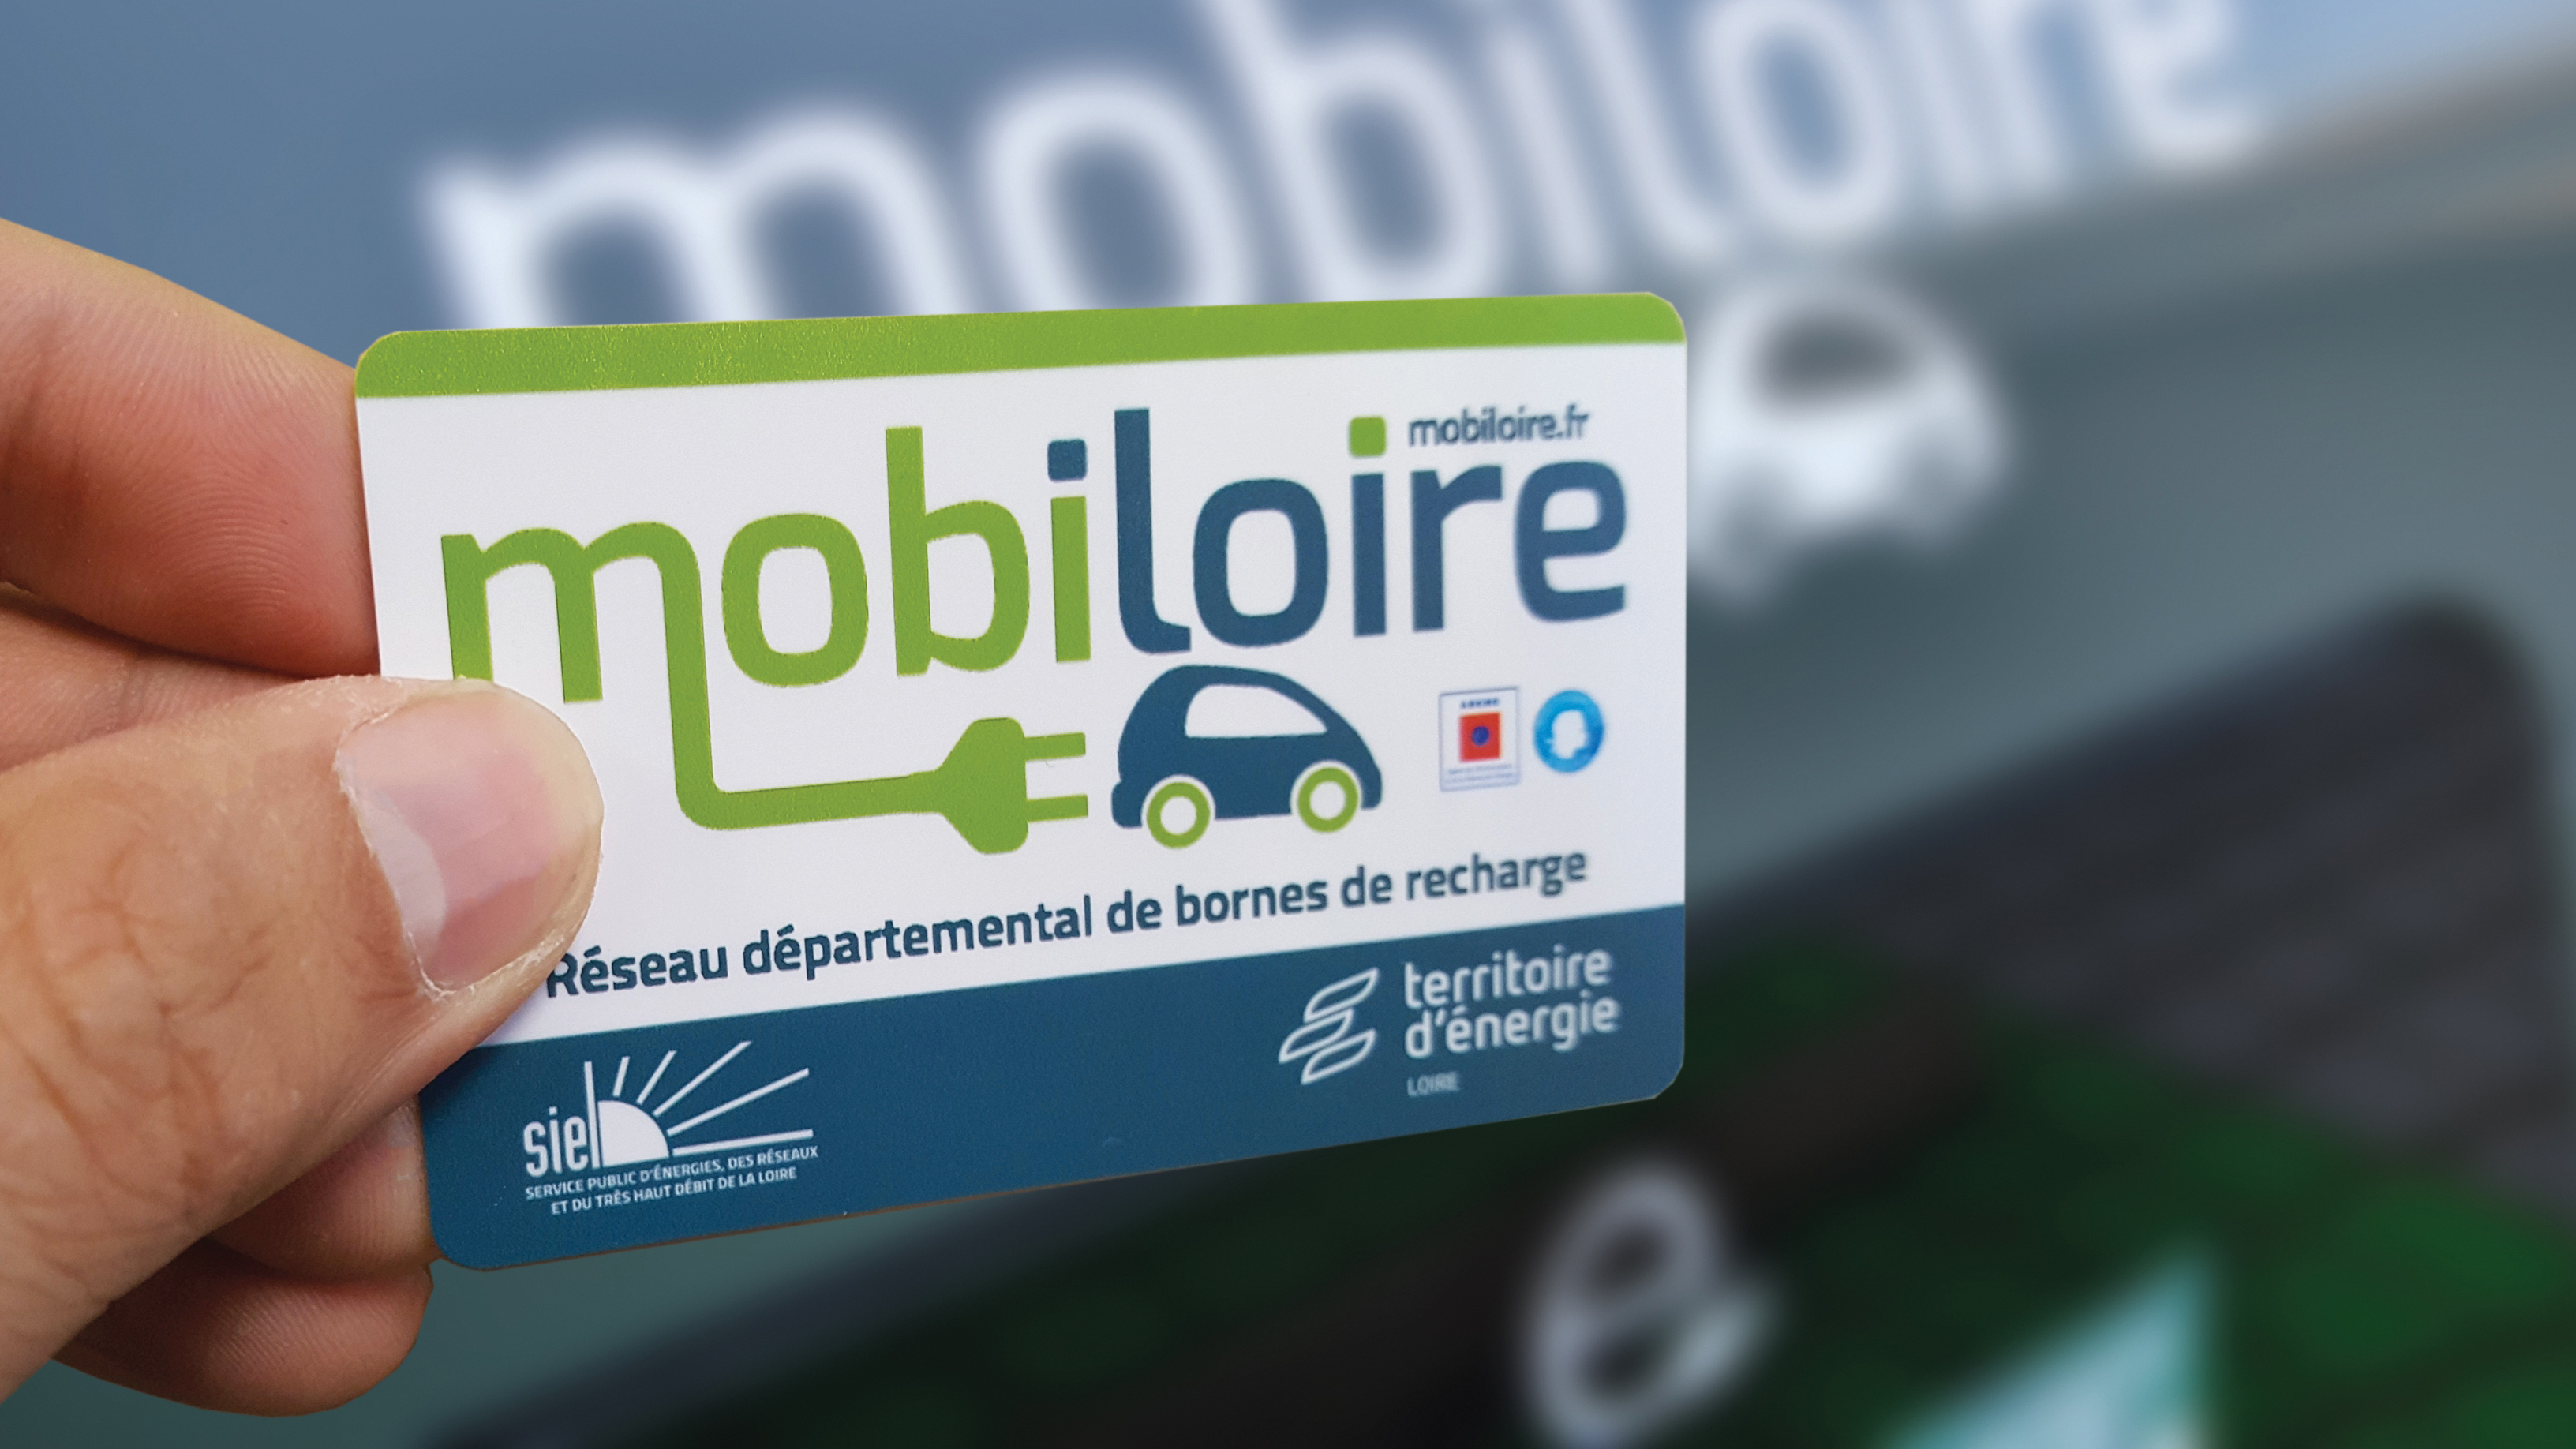 Mobiloire_badge acces